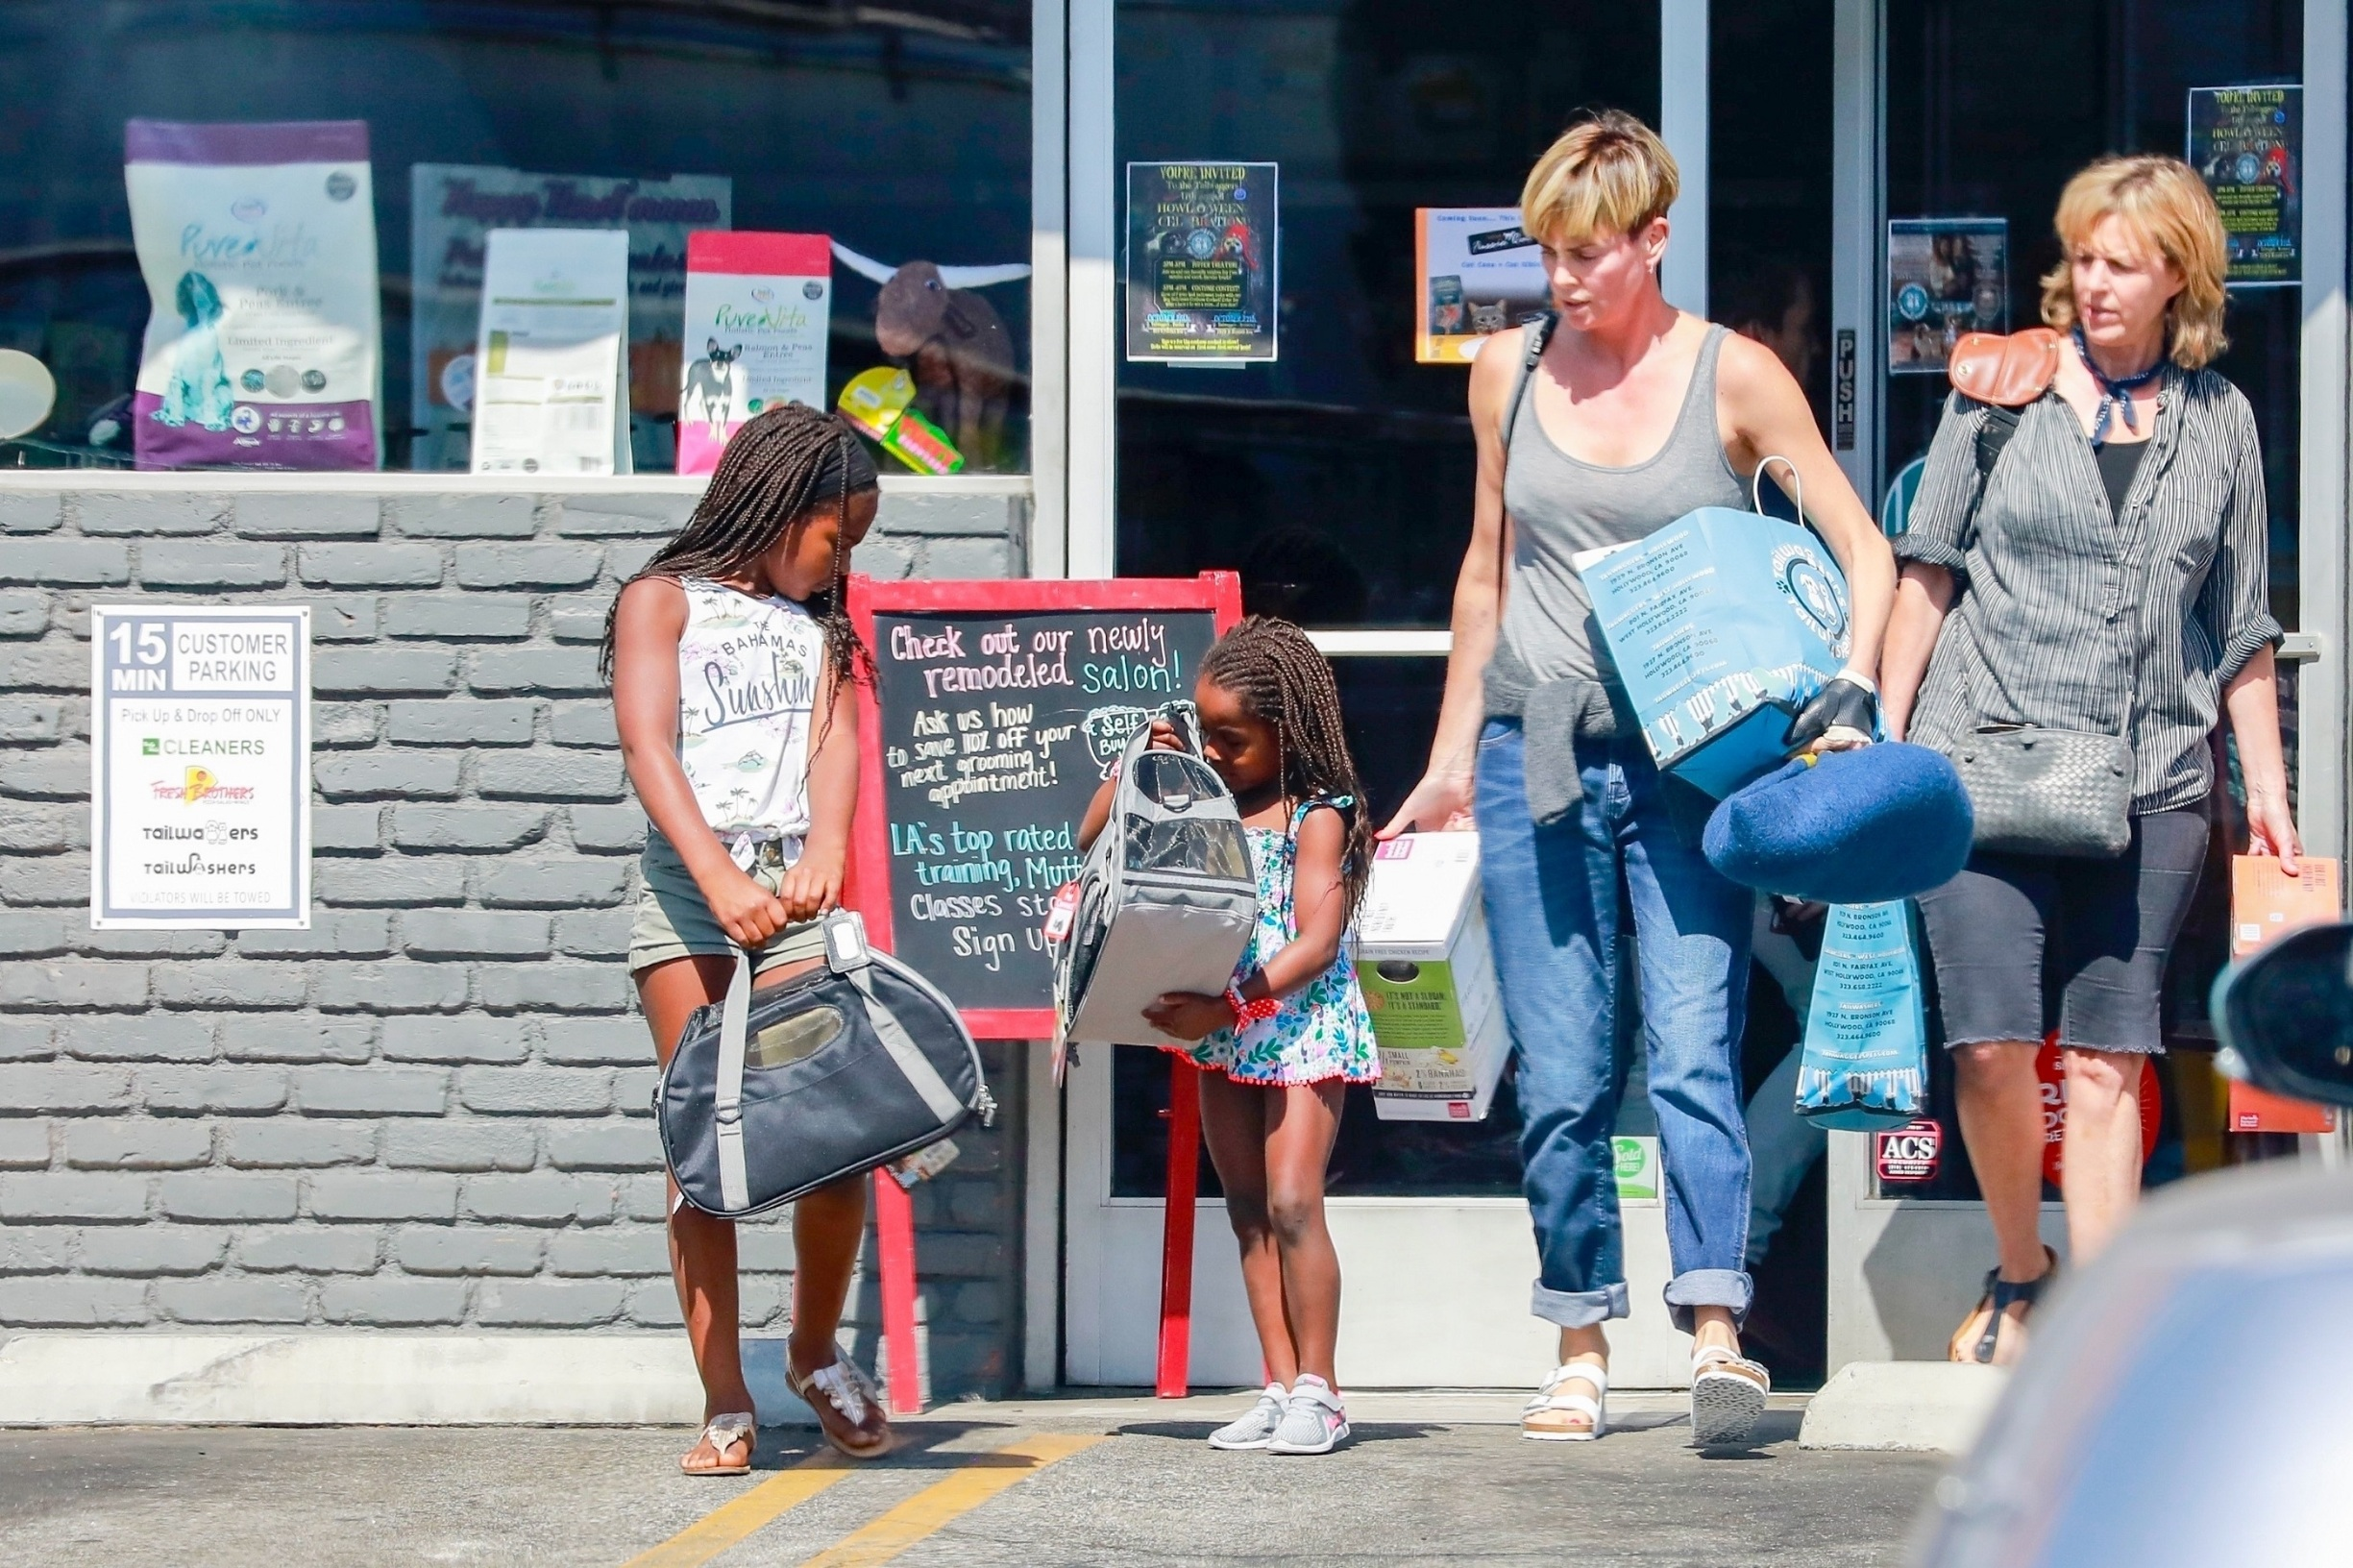 Los Feliz, CA  - *EXCLUSIVE*  - Charlize Theron takes her kids out to get new pets. The actress left the pet shop with her hands full of pet accessories and food while her daughters looked happy carrying their new furry friends.  *UK Clients - Pictures Containing Children Please Pixelate Face Prior To Publication*, Image: 475309176, License: Rights-managed, Restrictions: , Model Release: no, Credit line: Terma,SL / BACKGRID / Backgrid USA / Profimedia